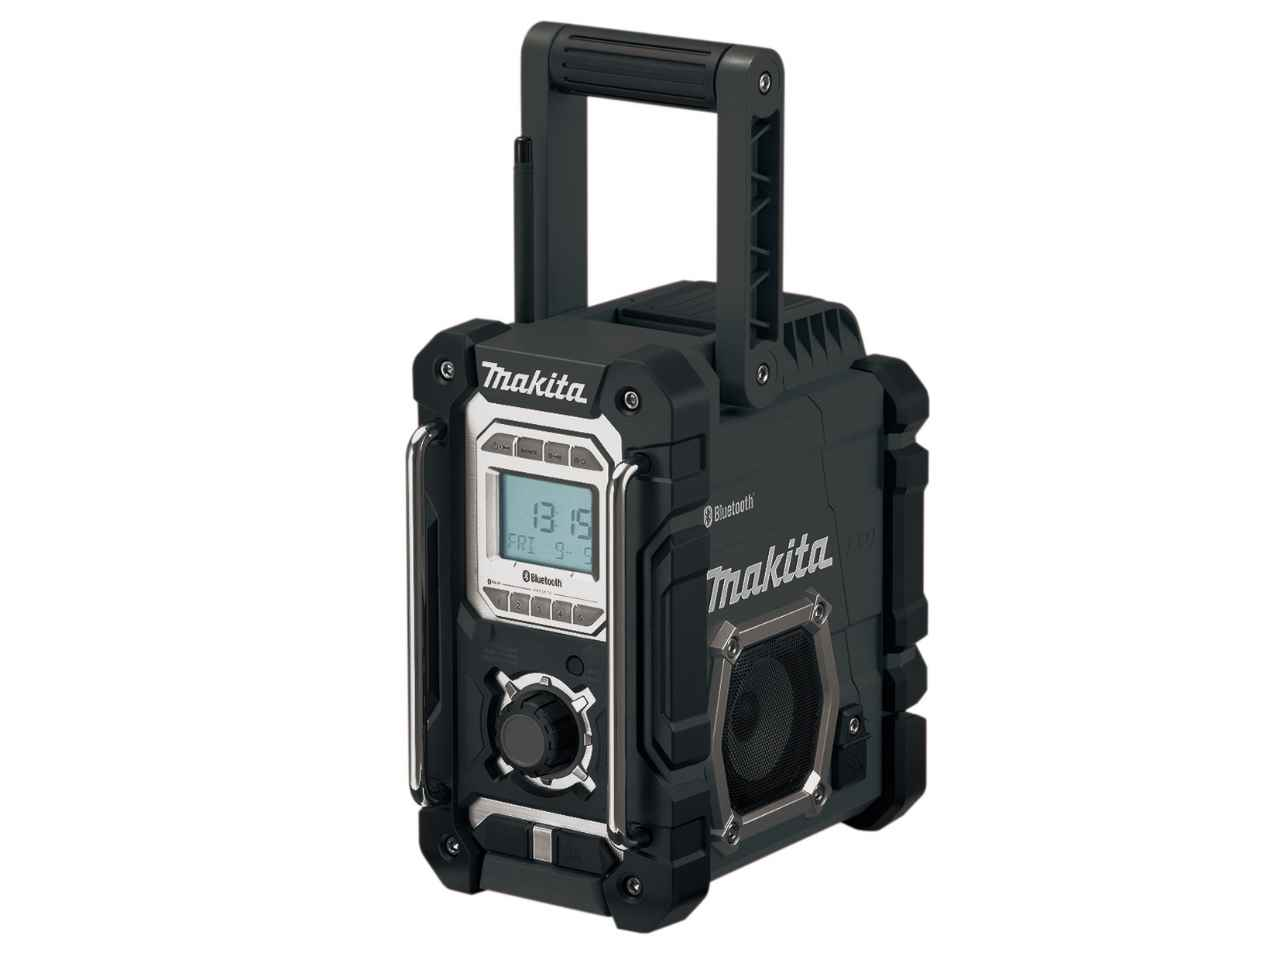 makita dmr104 job site radio with dab 240v. Black Bedroom Furniture Sets. Home Design Ideas